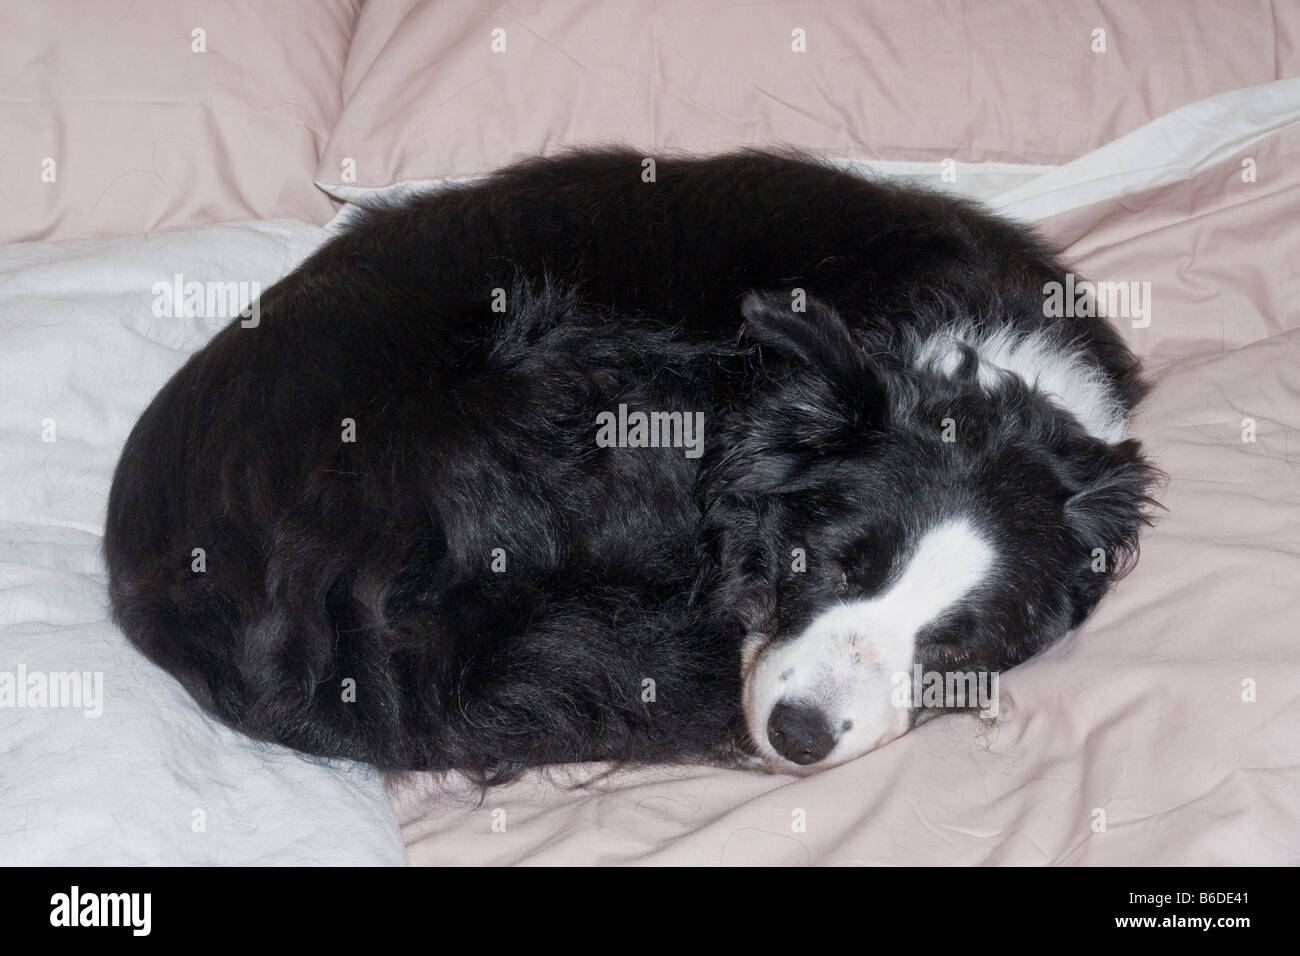 Border collie asleep on a bed - Stock Image